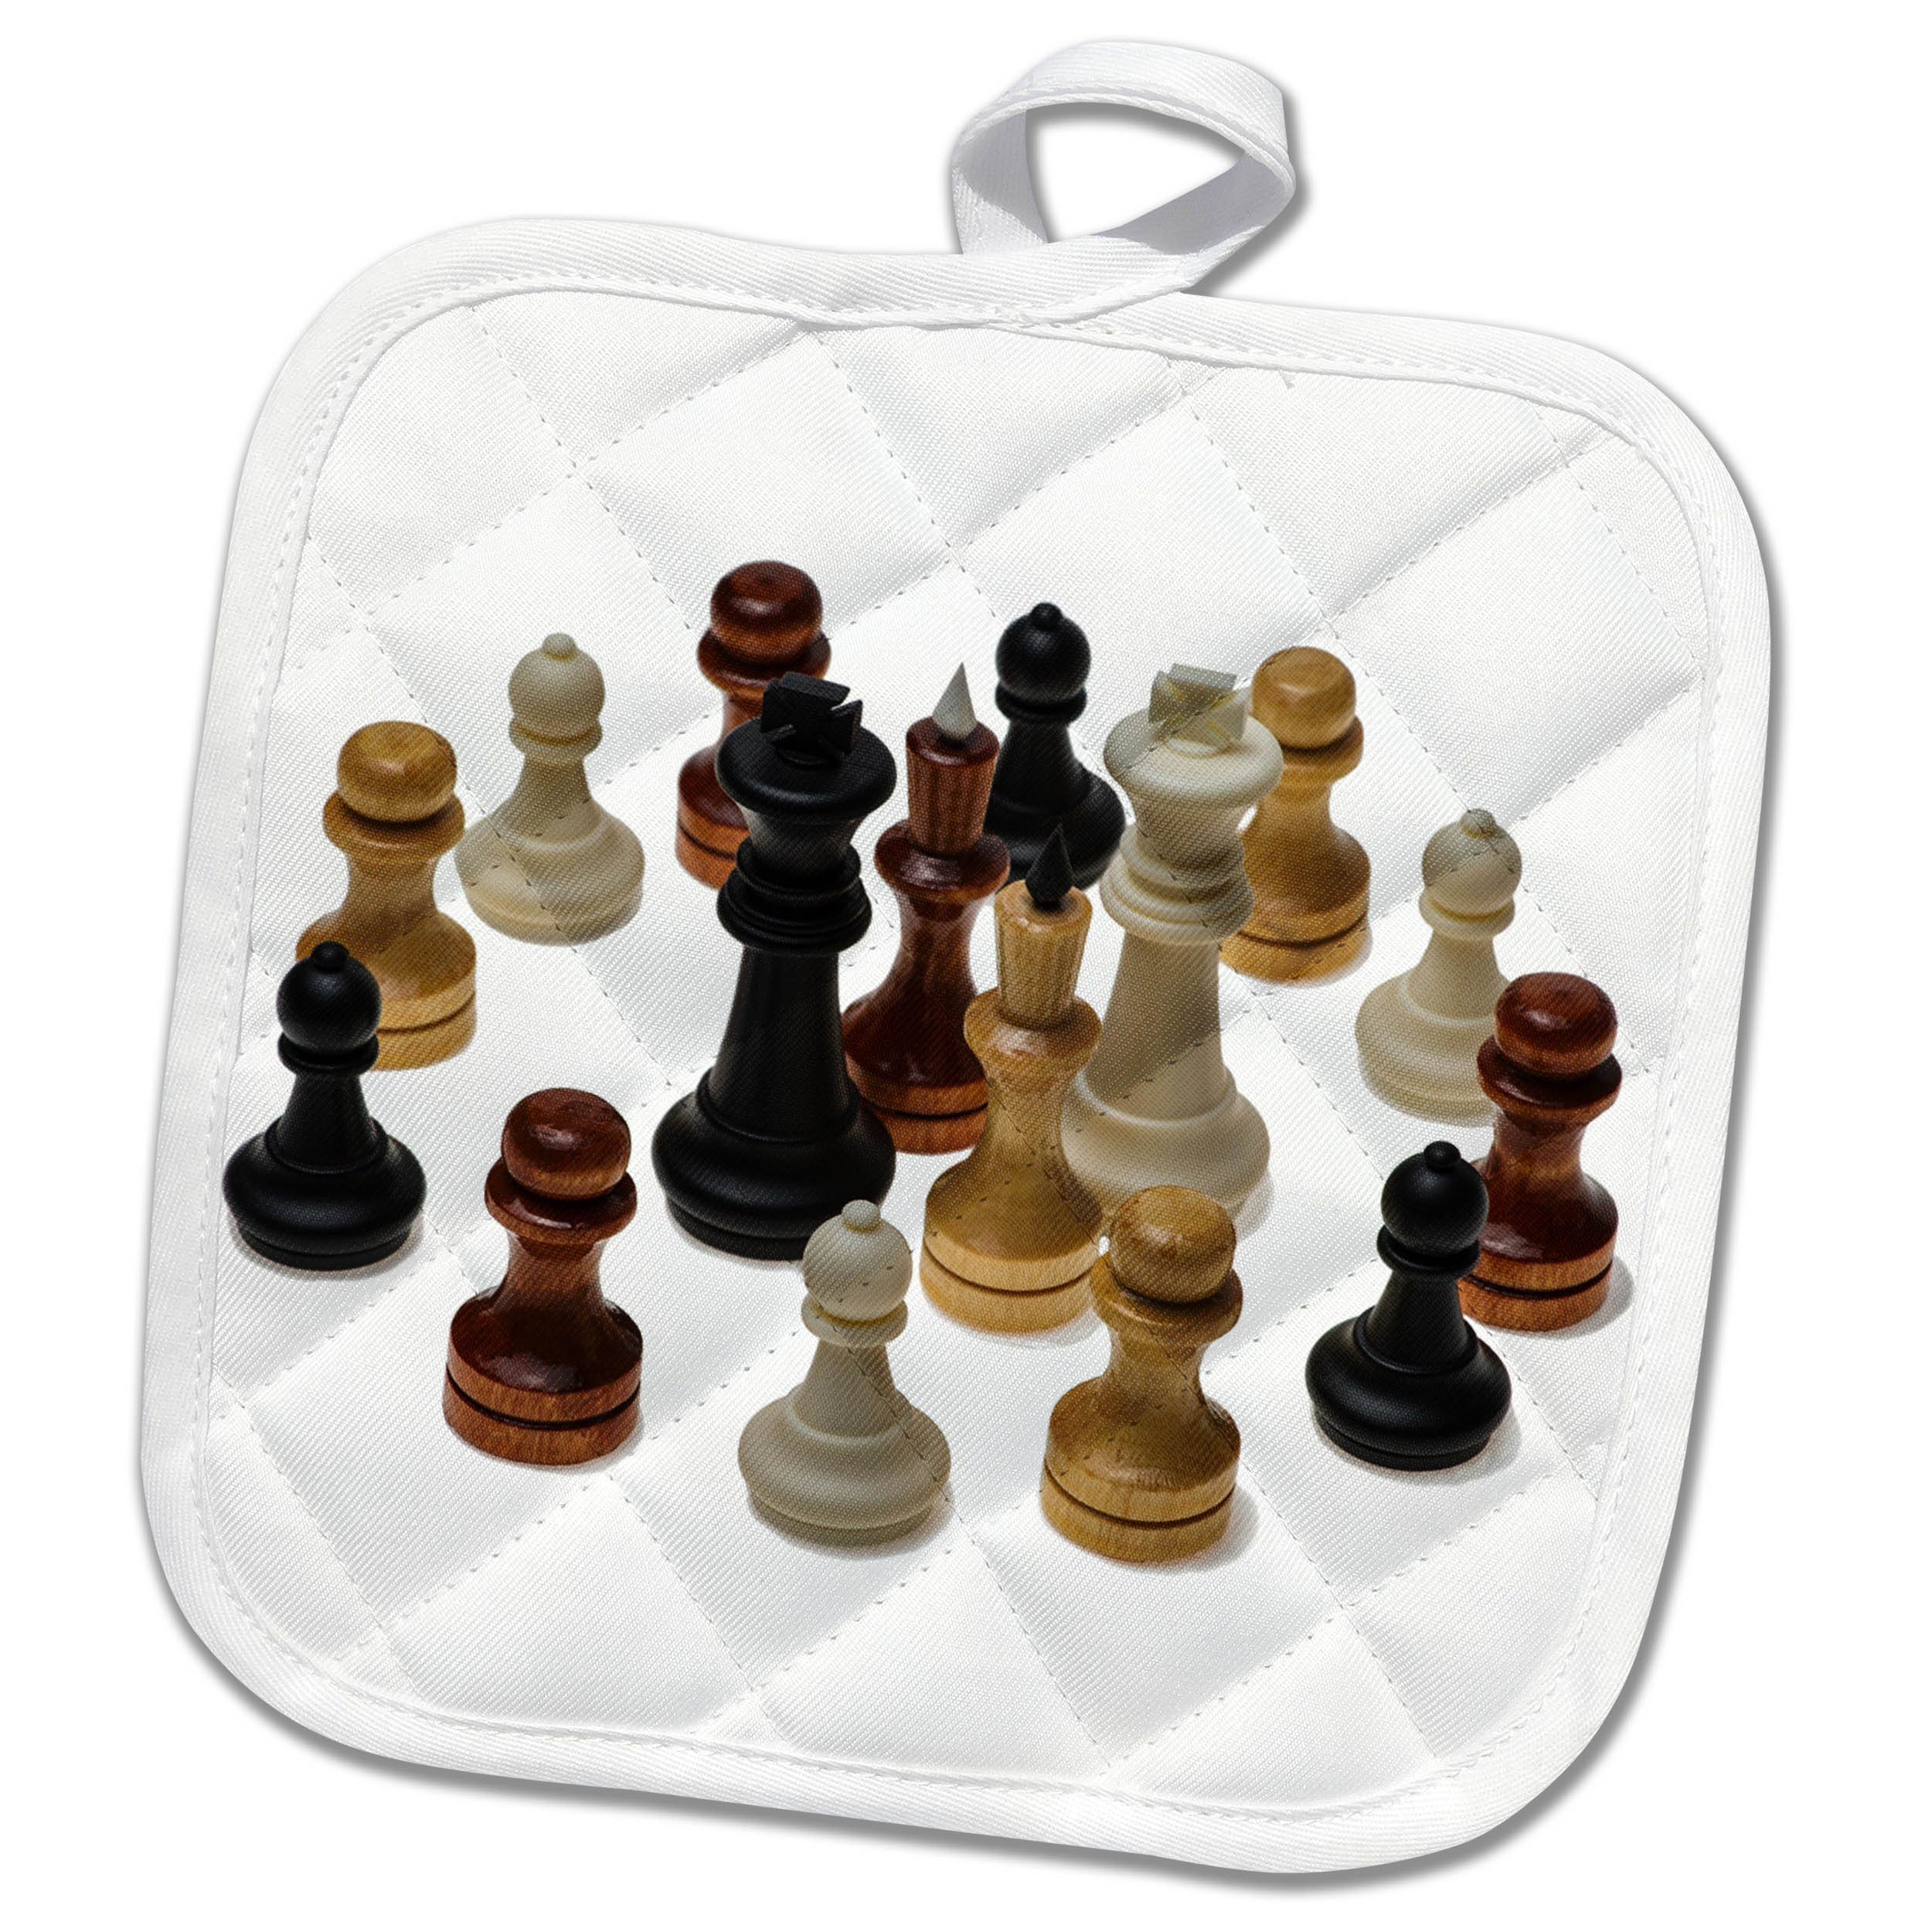 3dRose Alexis Photography - Objects - Chess kings, queens, pawns. Variety of colors. Fraternity and unity - 8x8 Potholder (phl_264261_1)